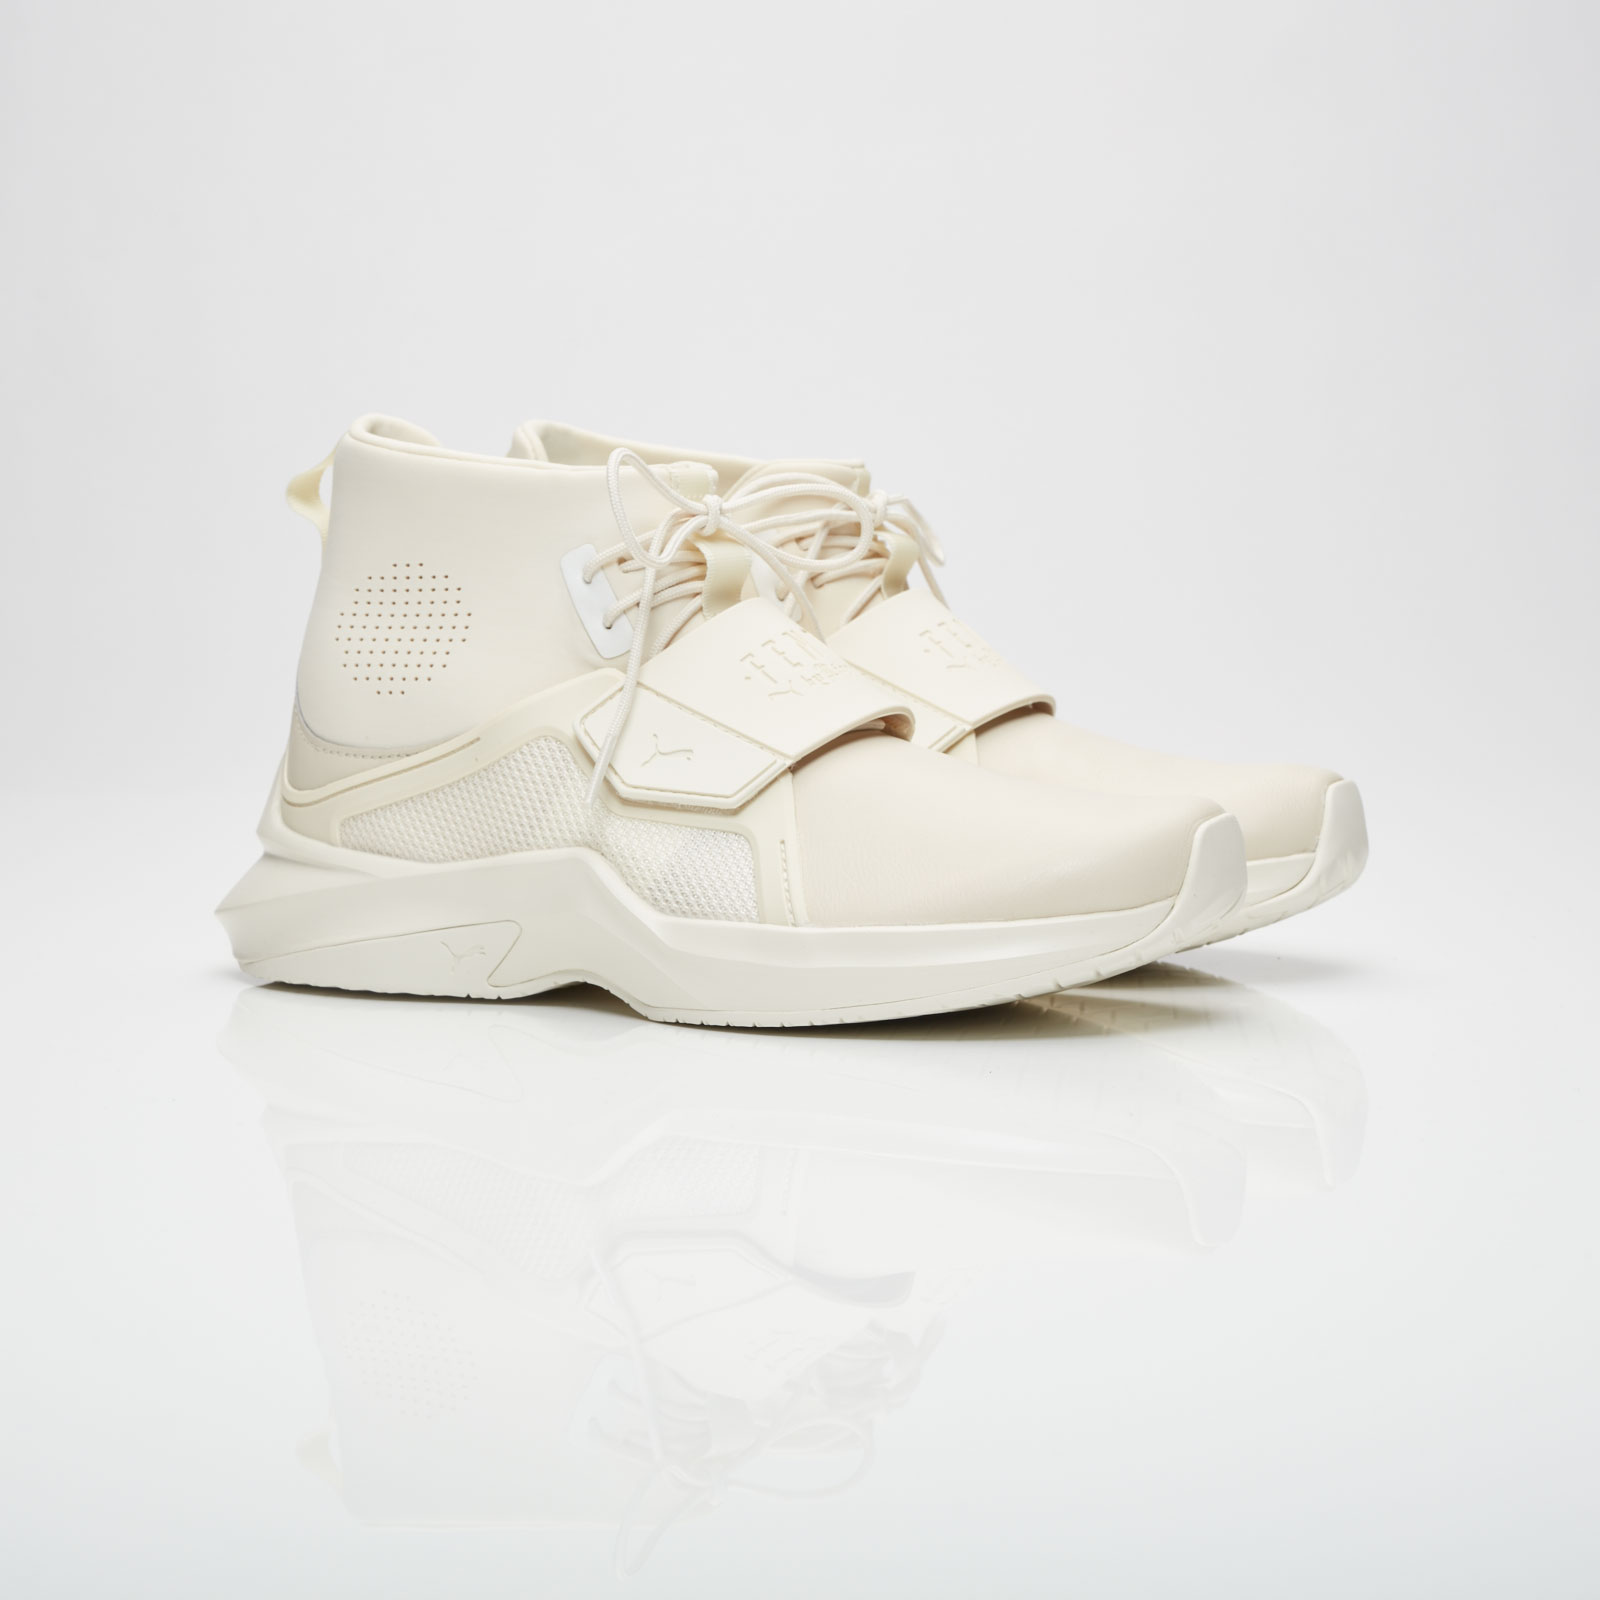 check out b8a15 c98ba Puma Fenty Hi Leather Wns - 190398-04 - Sneakersnstuff ...